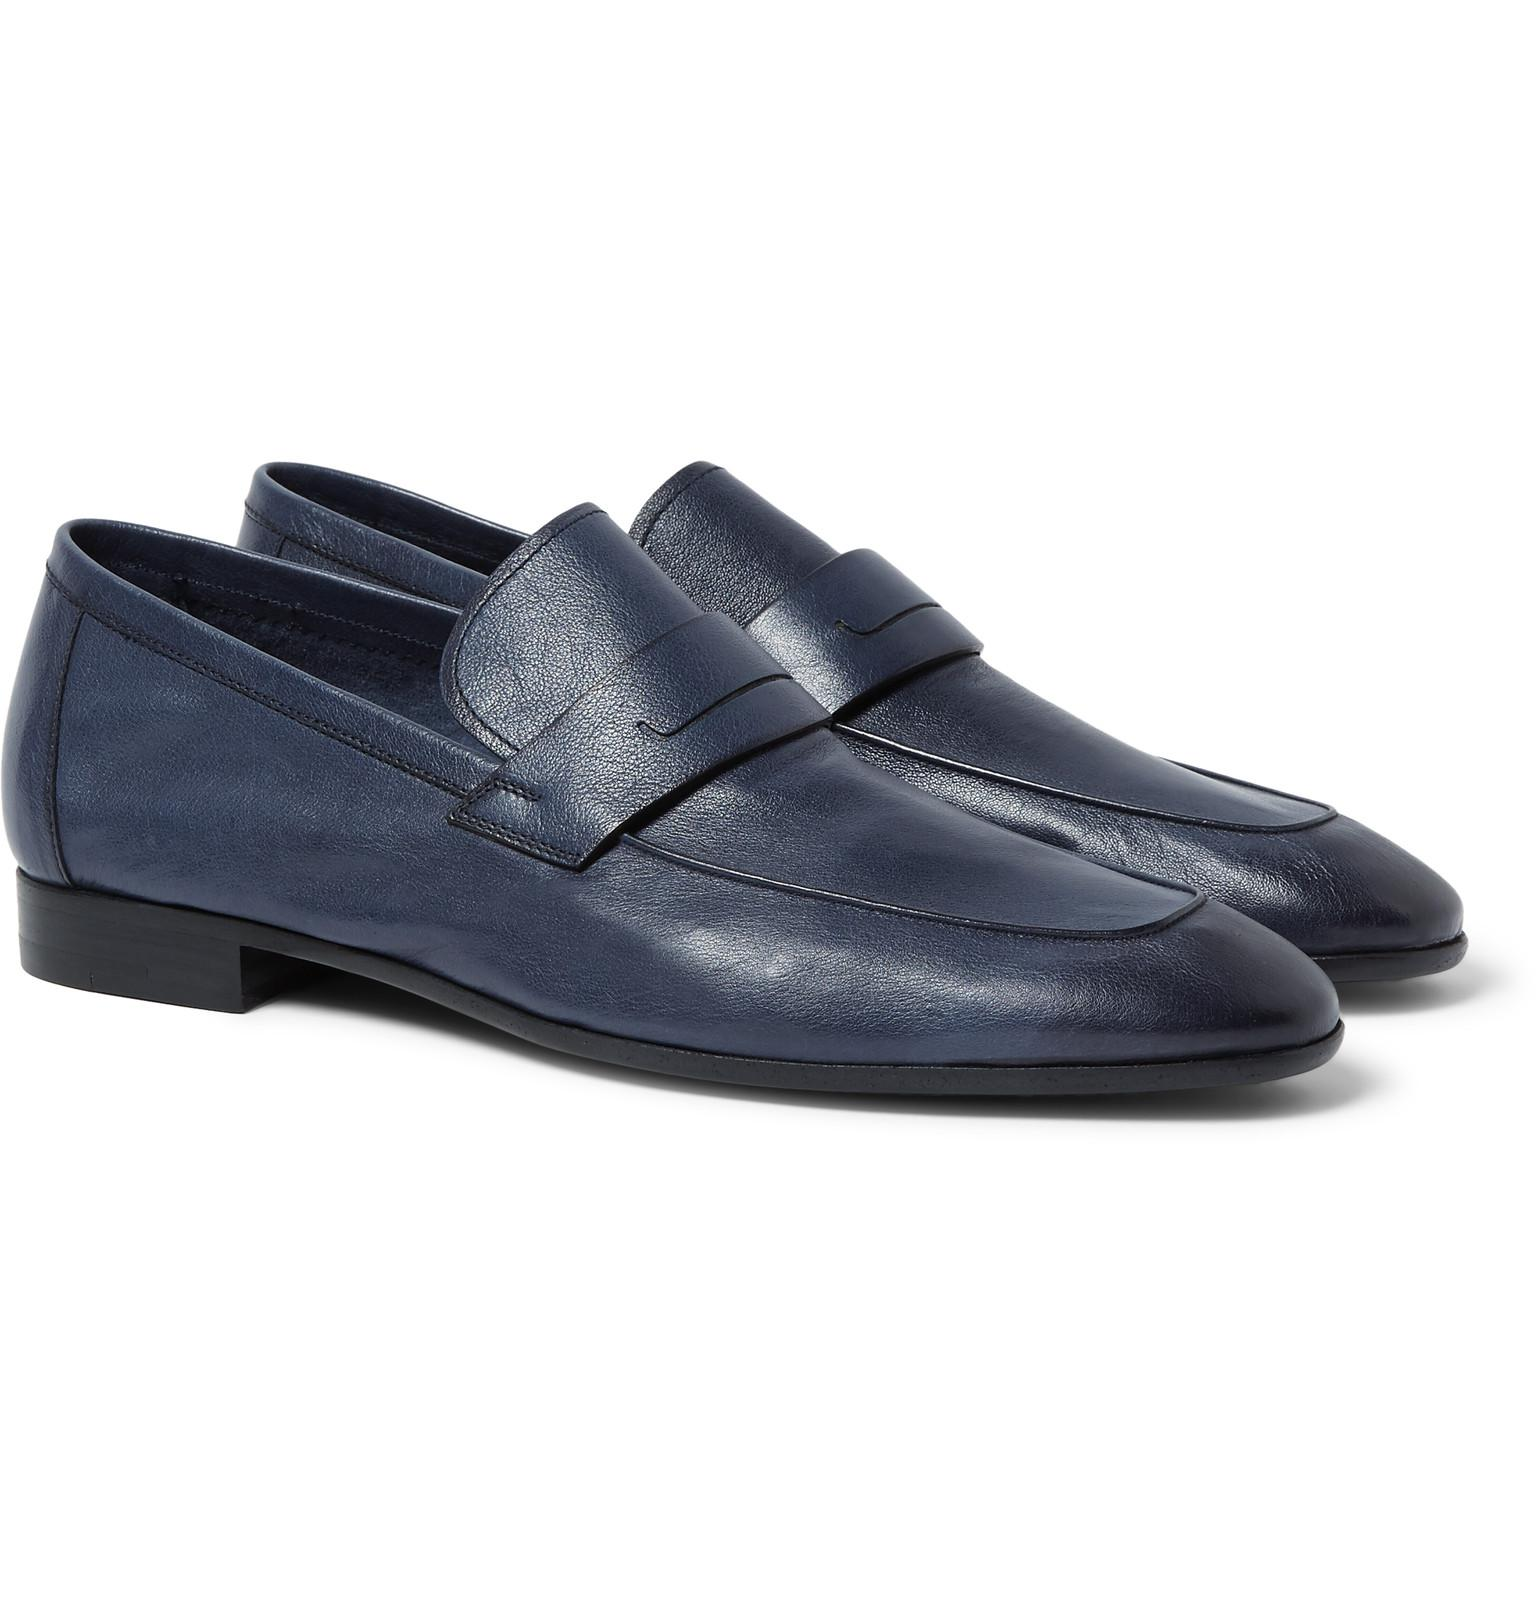 Lorenzo Rimini Leather Backless Loafers Berluti Discount Authentic Manchester Great Sale Cheap Price Sale Cheap Price Free Shipping Amazing Price Huge Surprise Cheap Price 1XNdfyDiA4